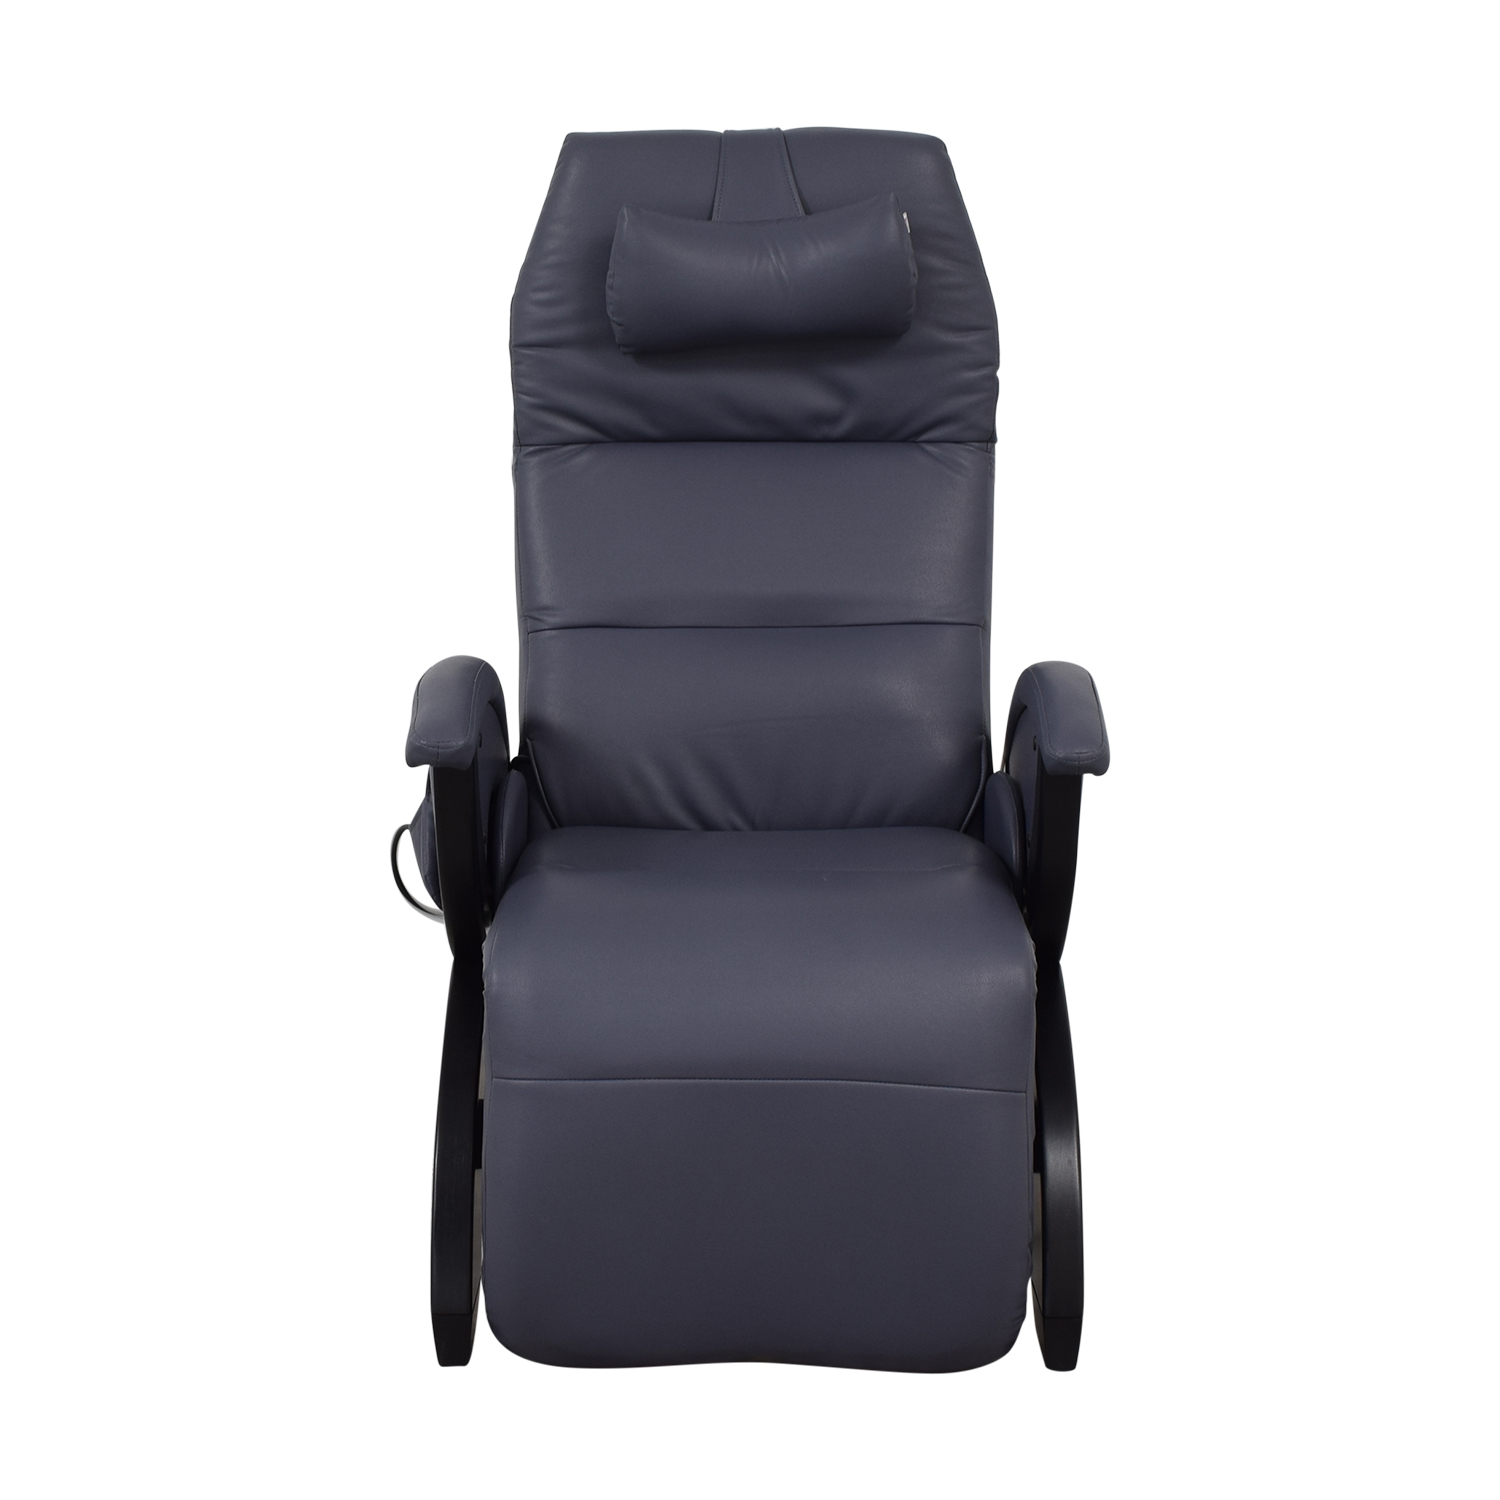 Andrew Leblanc Company X-Chair Recliner nj